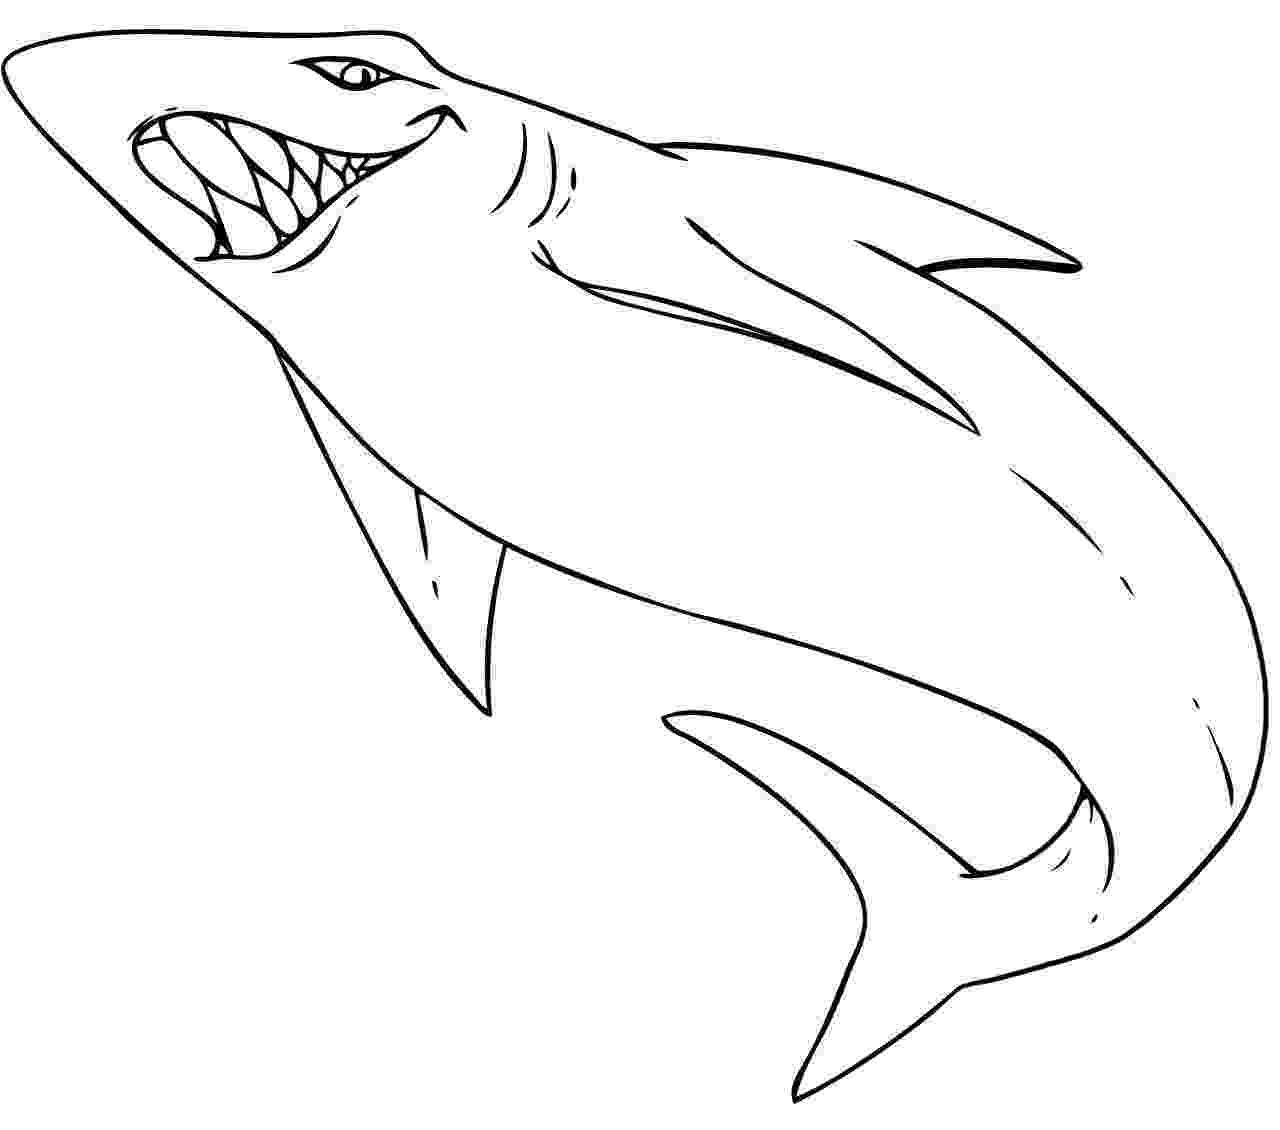 shark picture to color australian shark coloring page free printable coloring pages shark to color picture